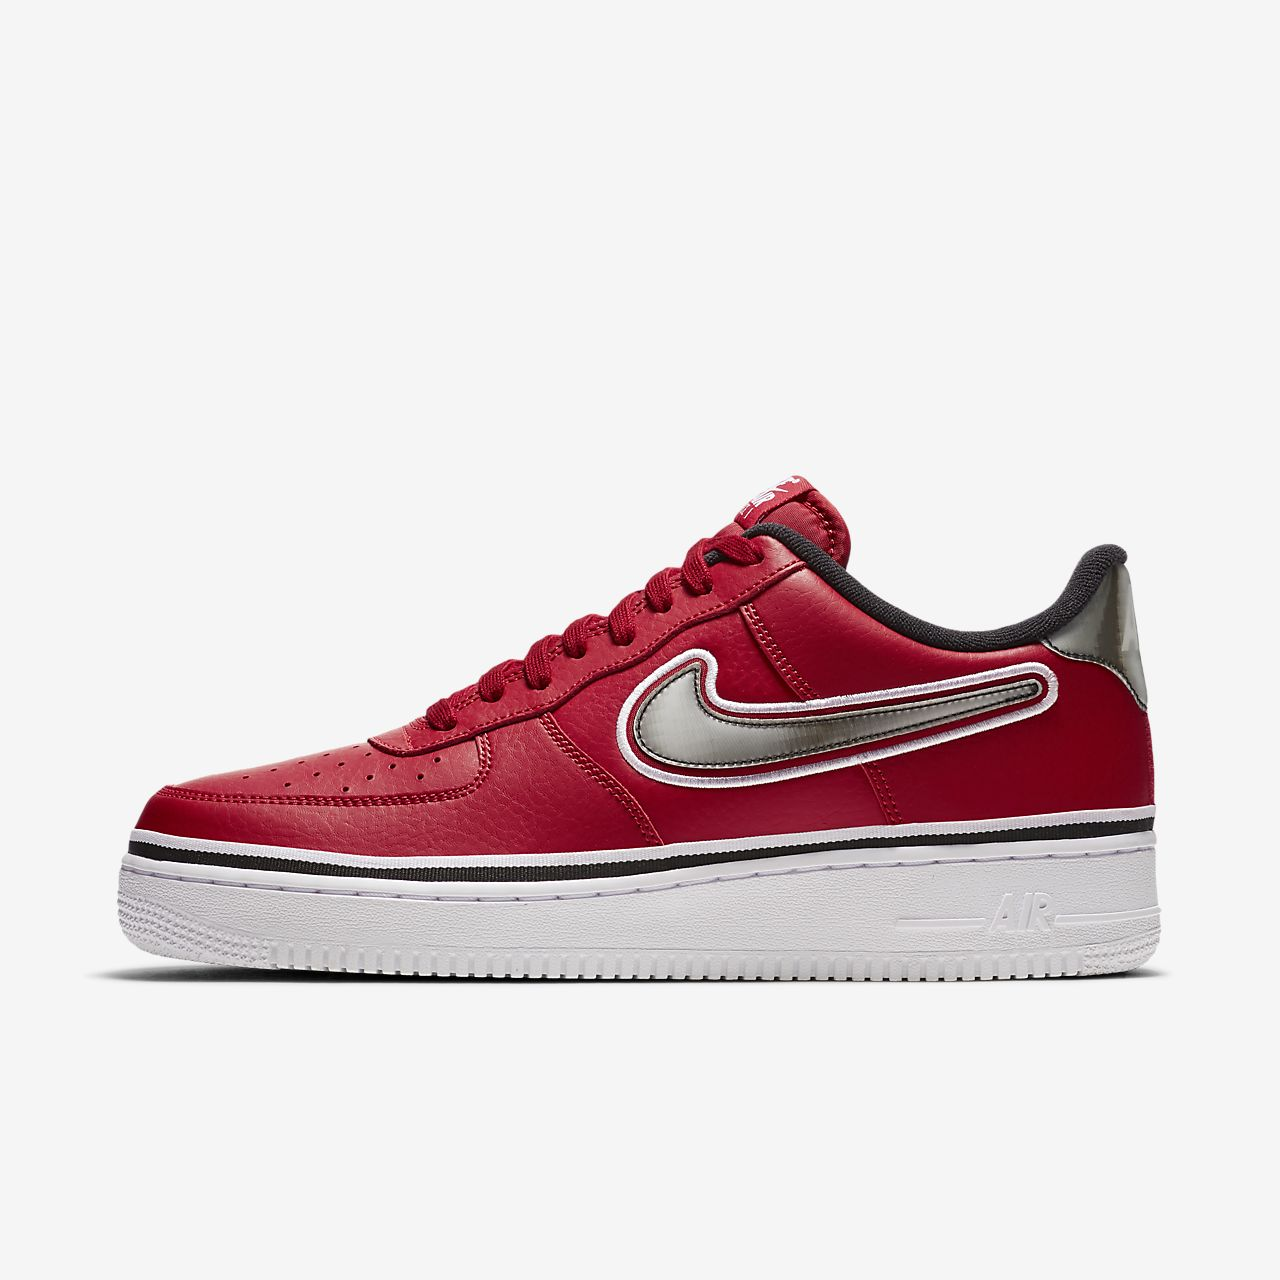 Nike Air Force 1 NBA Low (Chicago Bulls) Men's Shoe